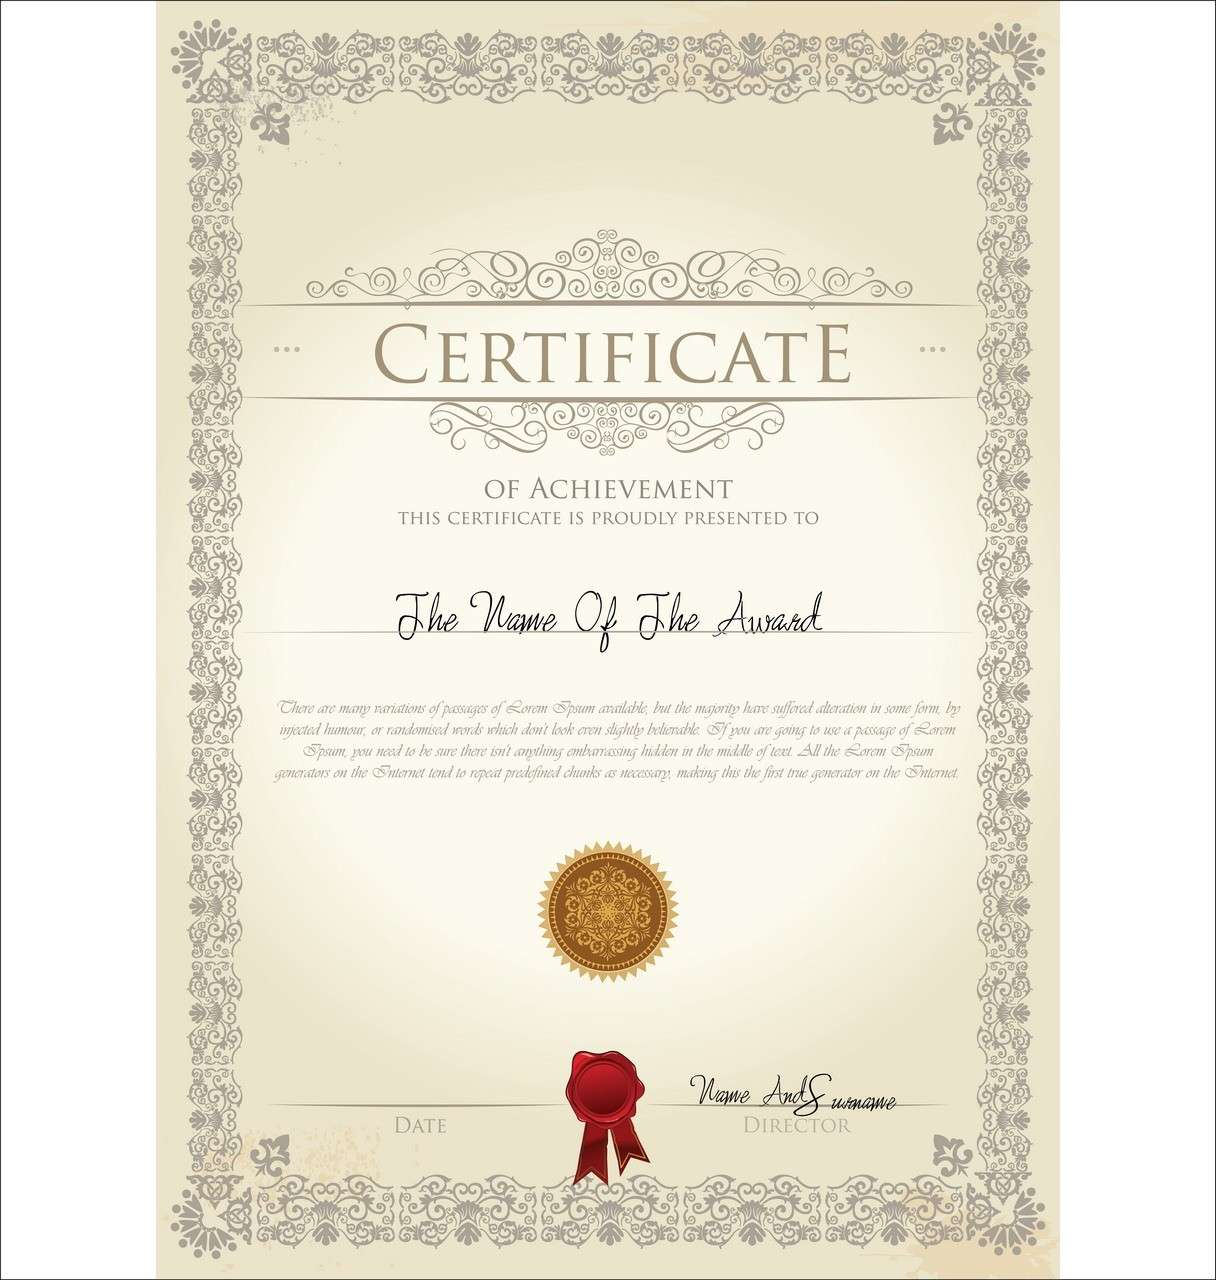 Certificate template 05 vector eps free download logo icons clipart certificate04 yadclub Choice Image